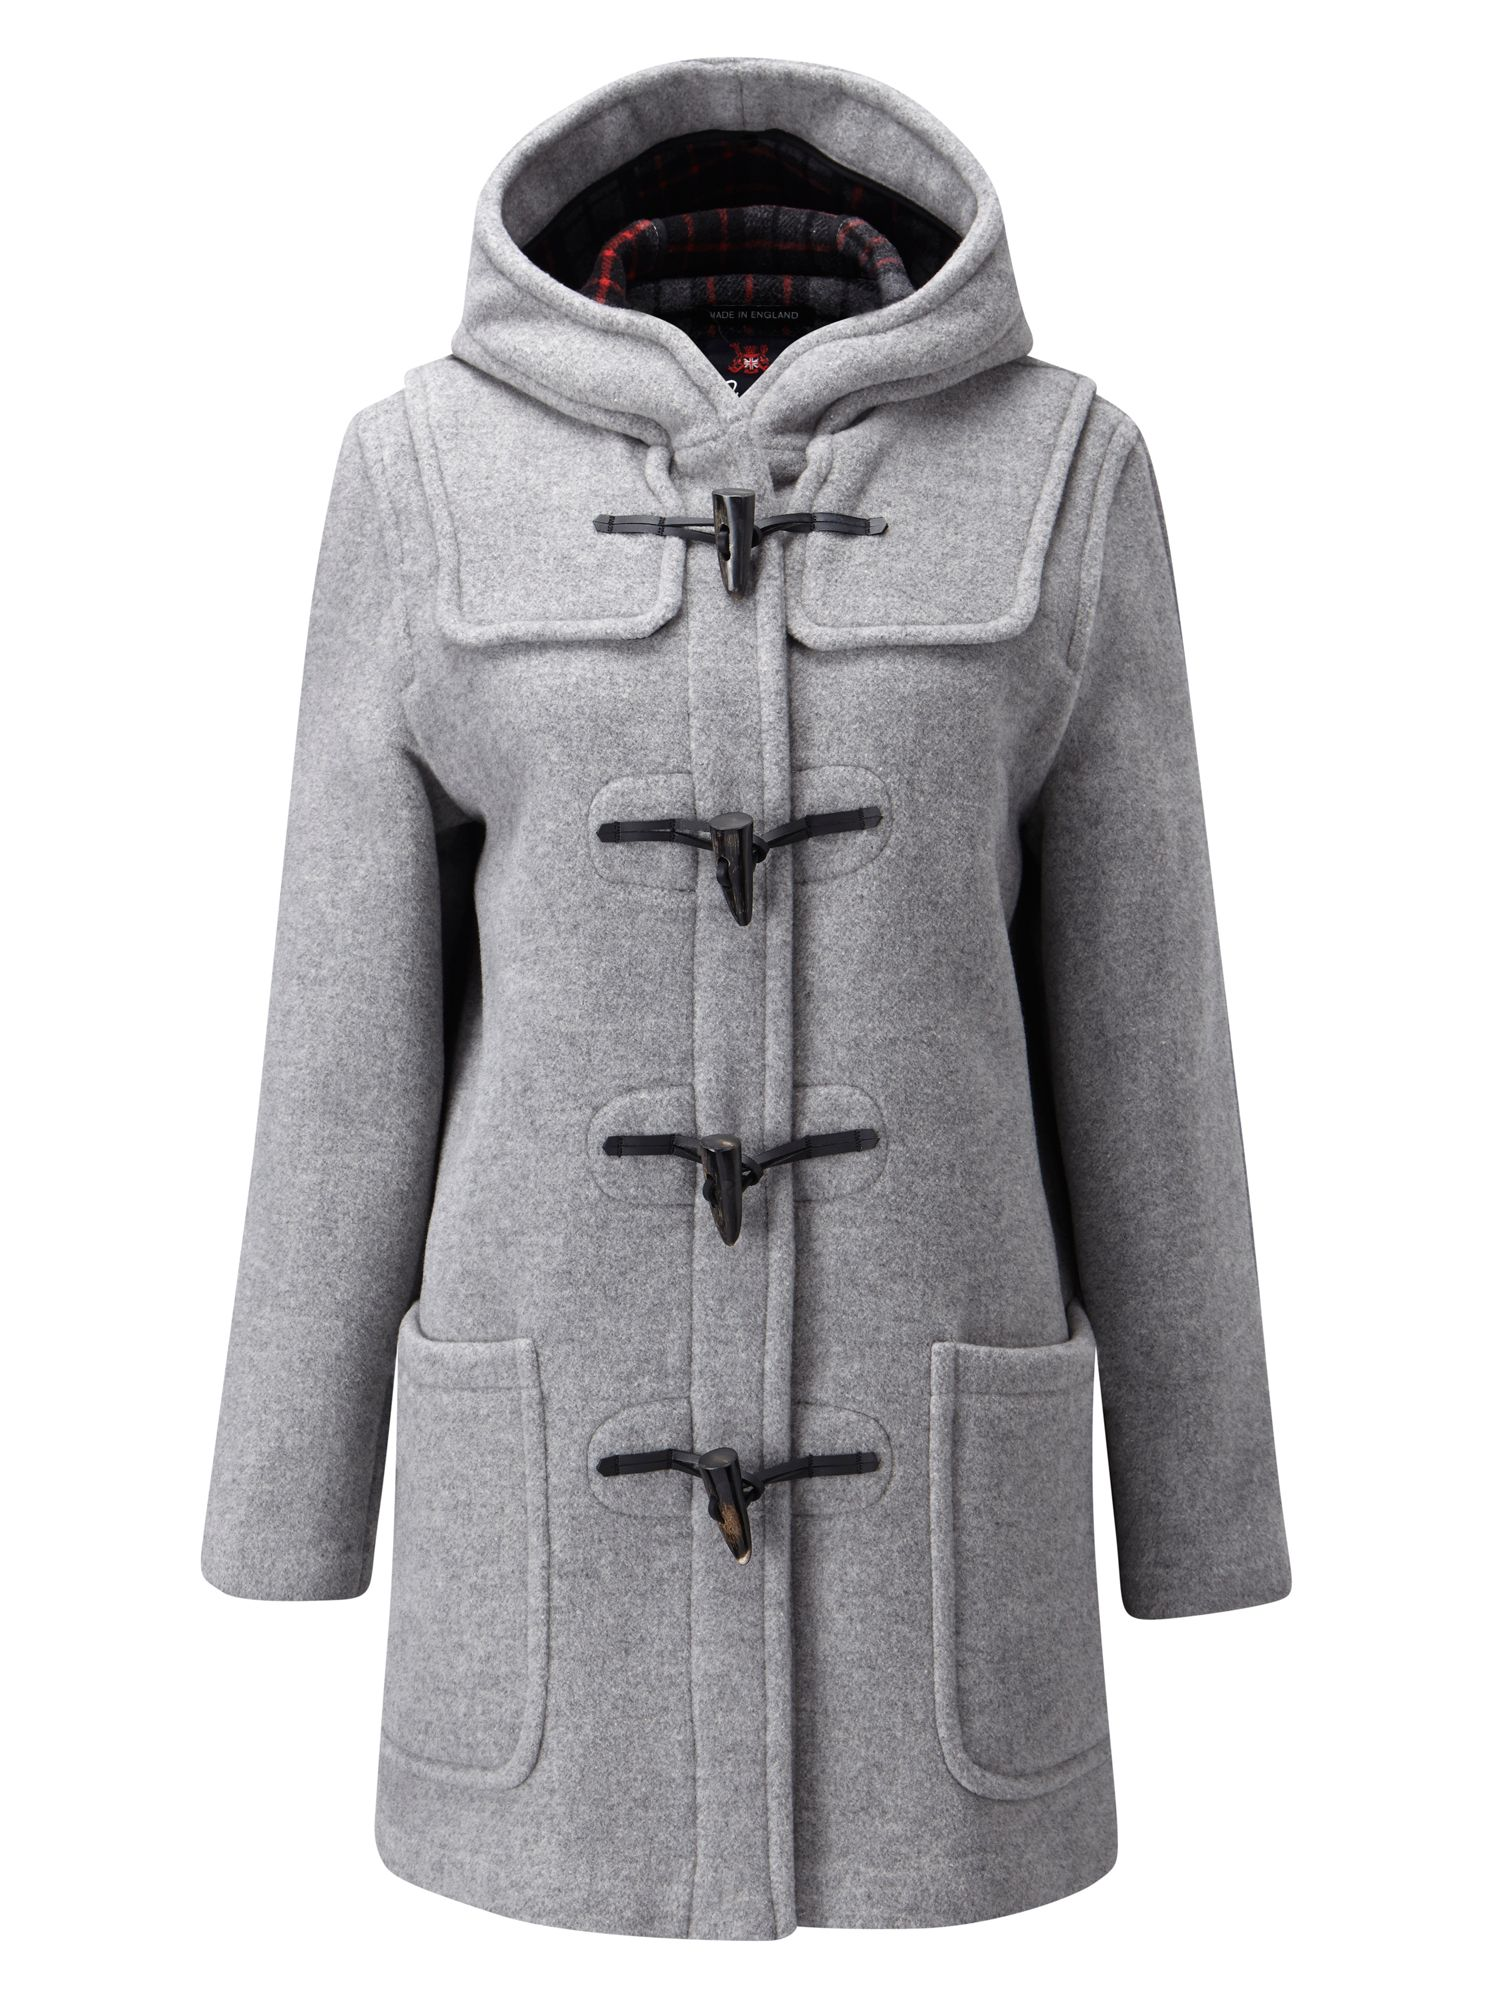 Gloverall Mid Length Original Fit Duffle Coat, Silver